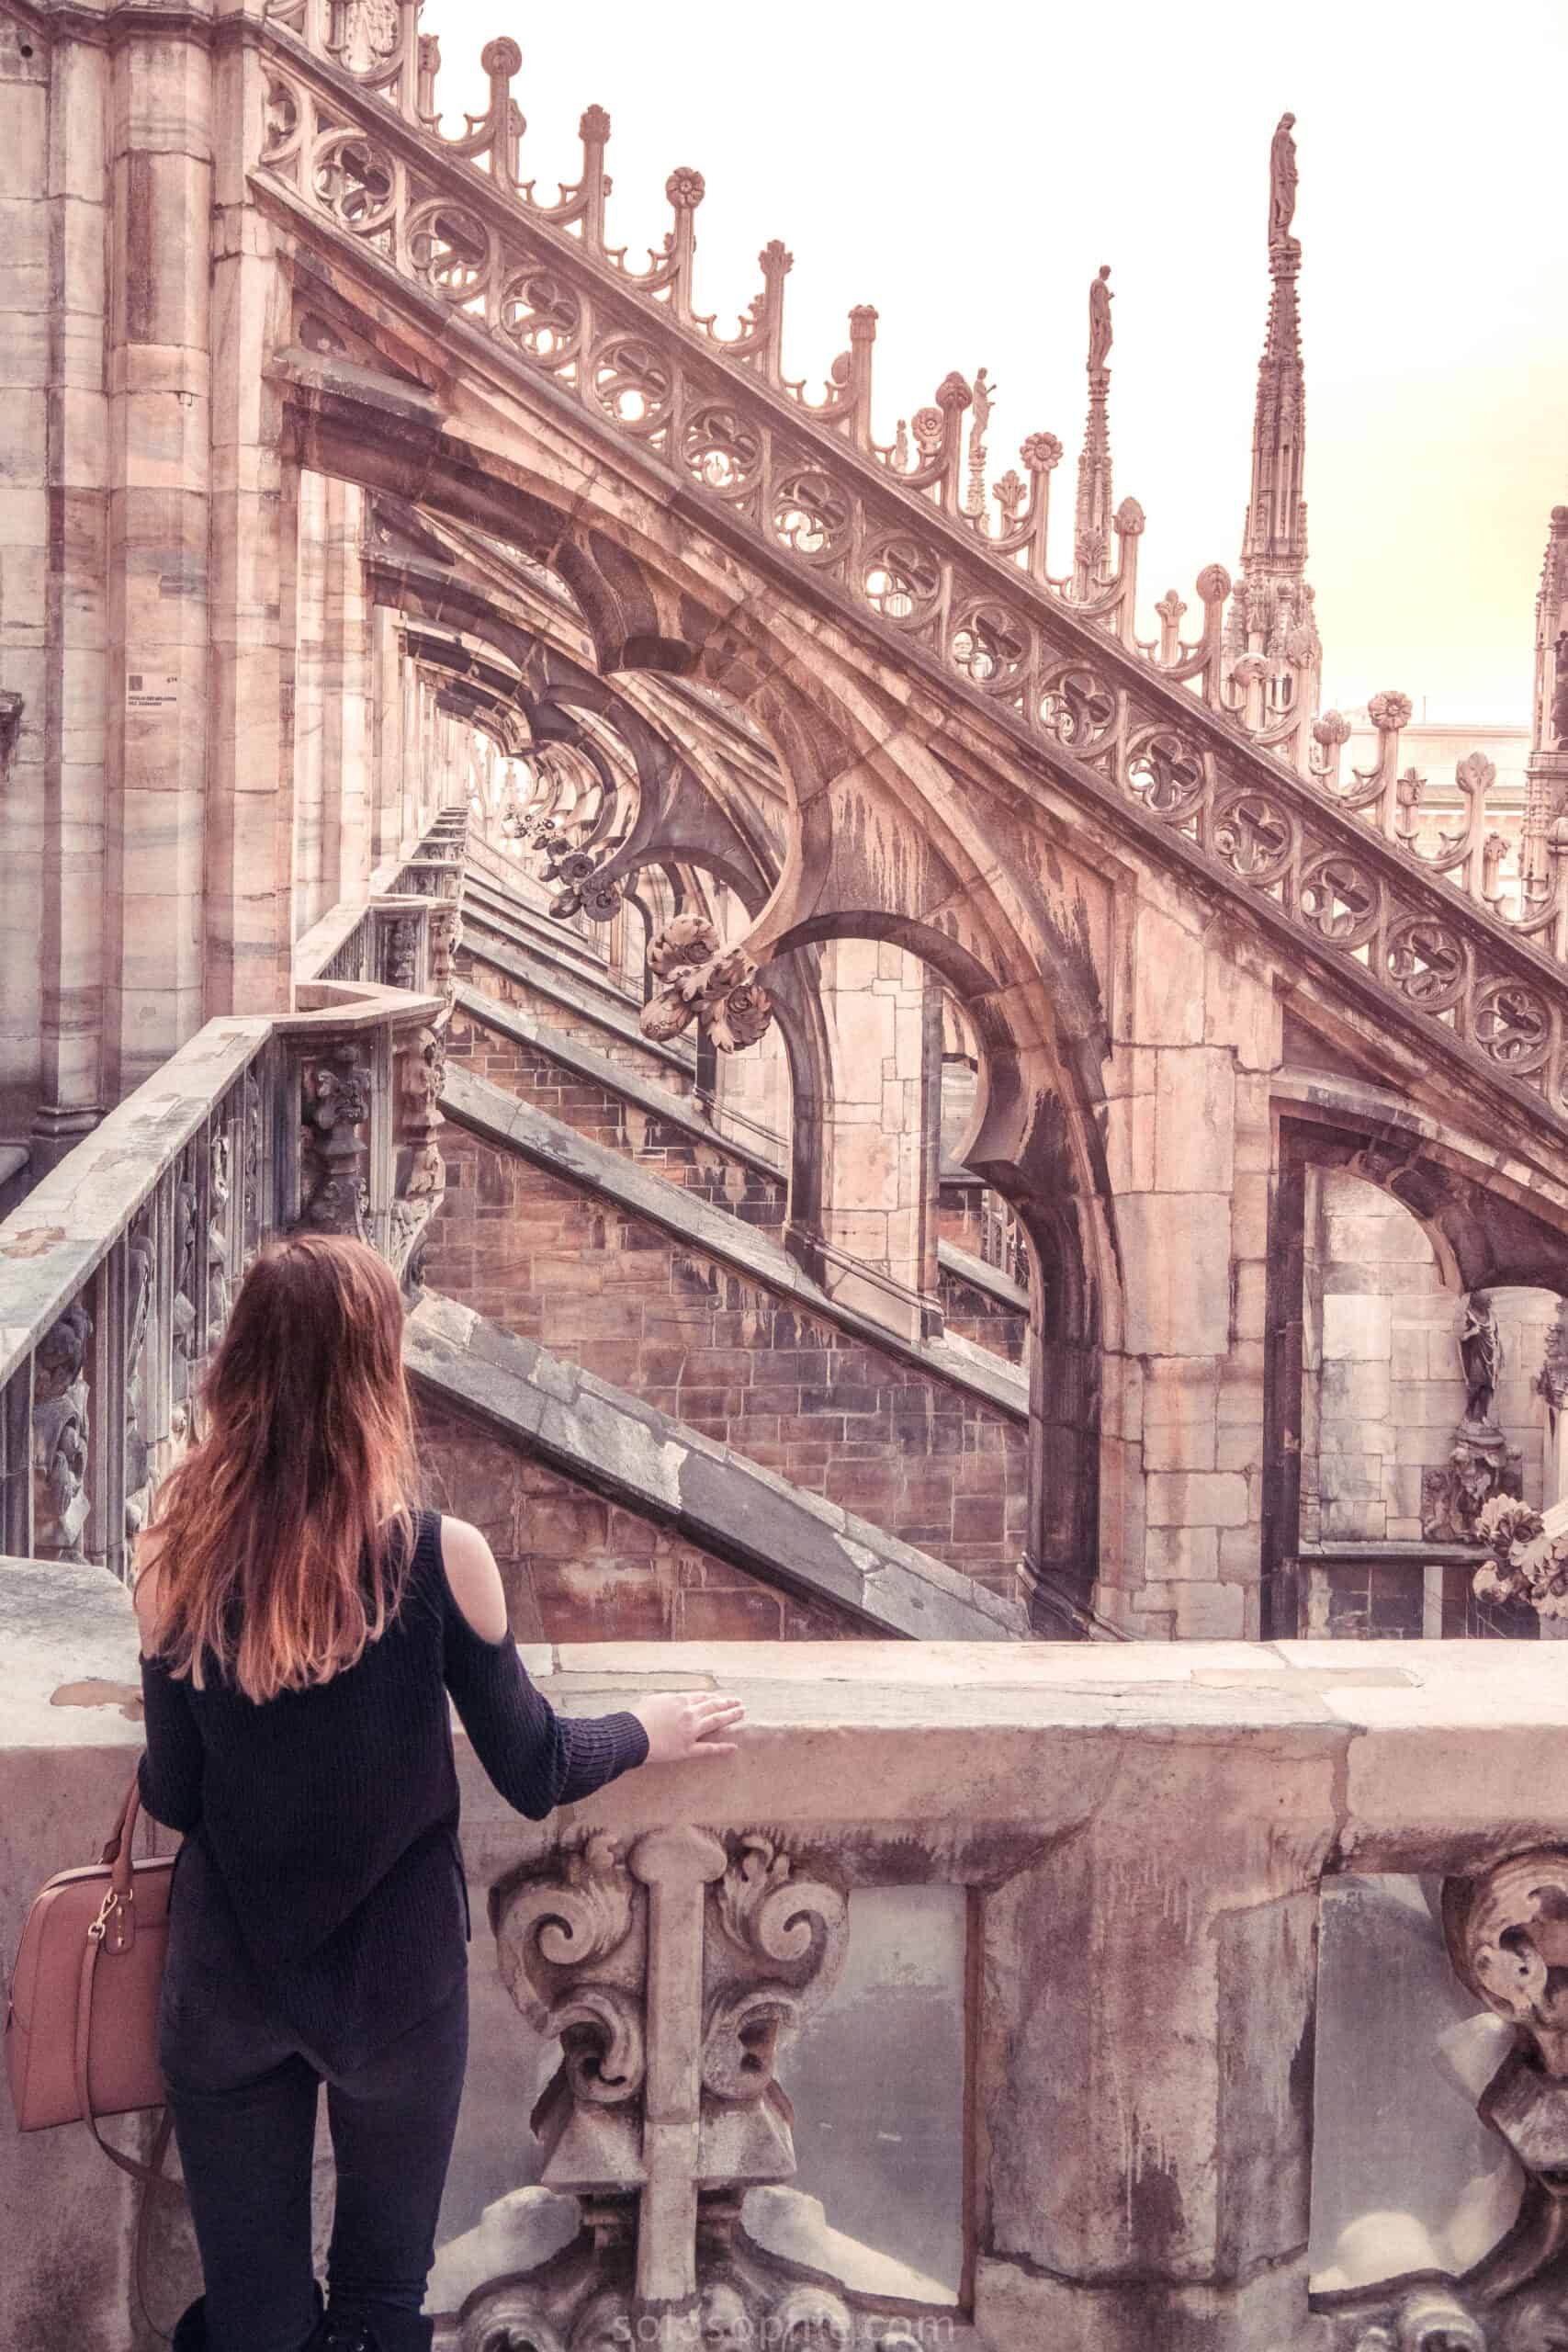 5 Excellent reasons to visit Italy in the Spring and why you should add a trip to your bucket list ASAP! Spring blooms, fewer crowds, lower prices and more!